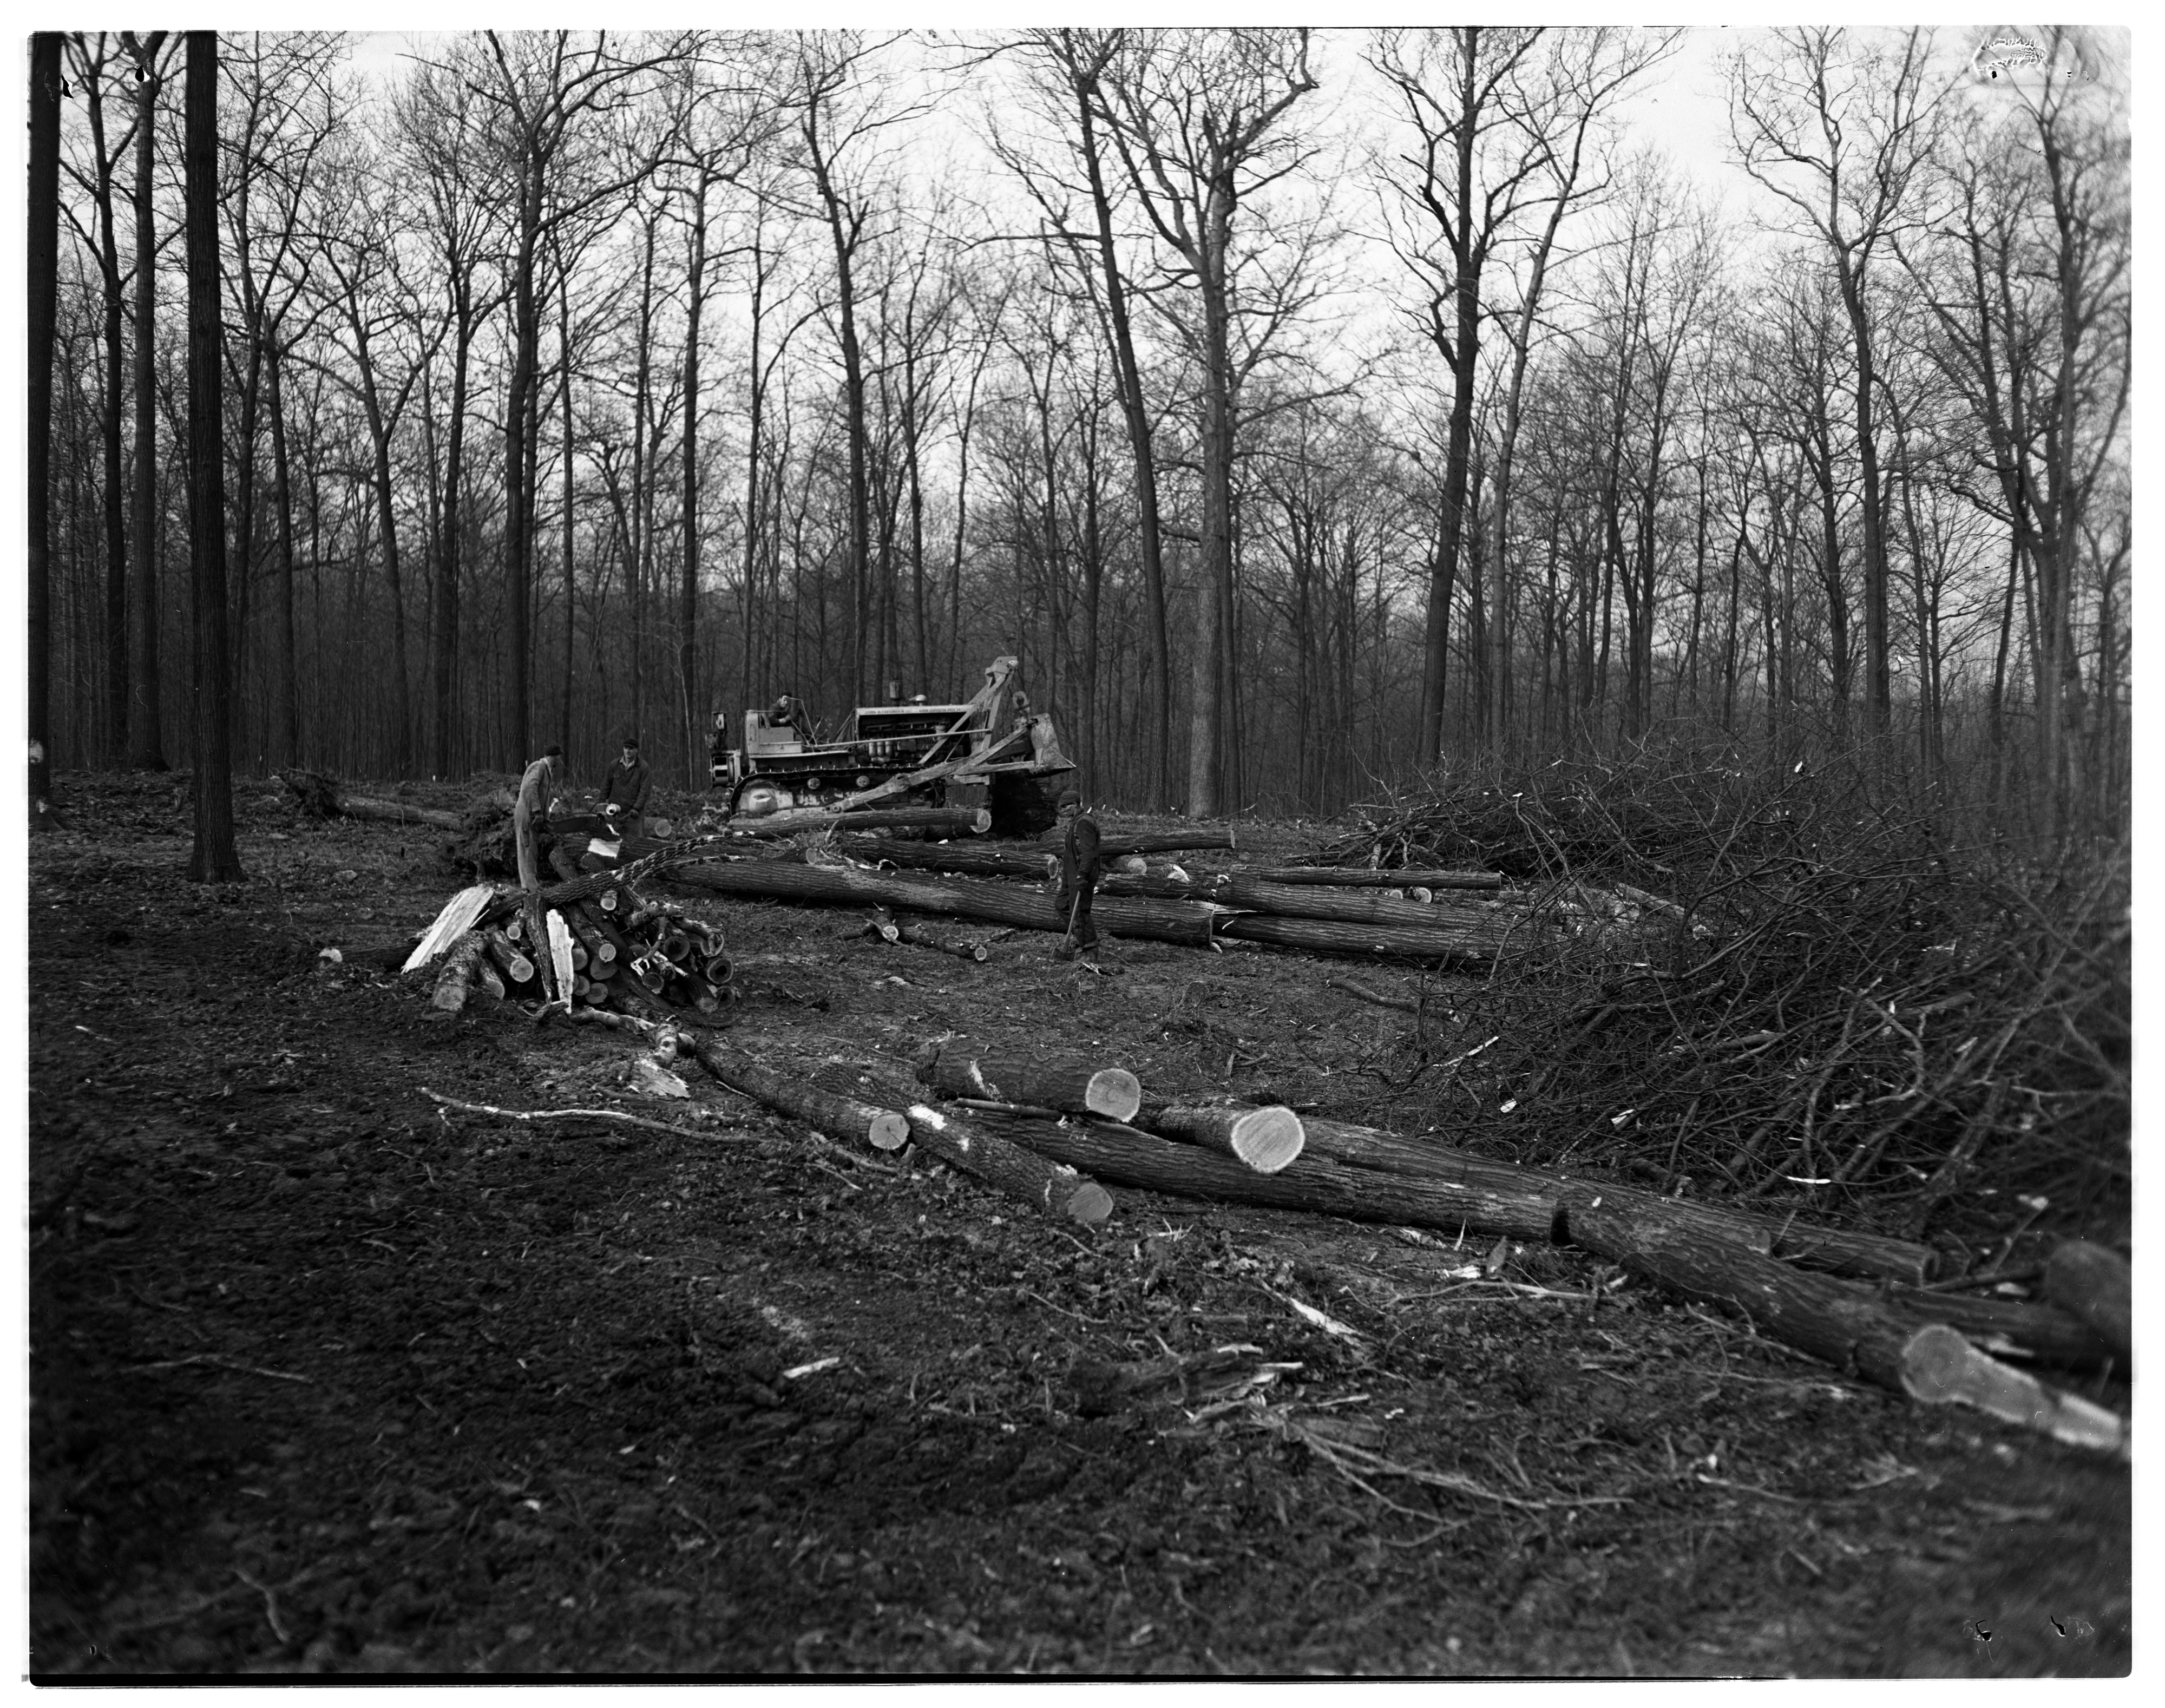 Clearing Eberwhite Woods For Construction of Eberwhite School, January 1950 image